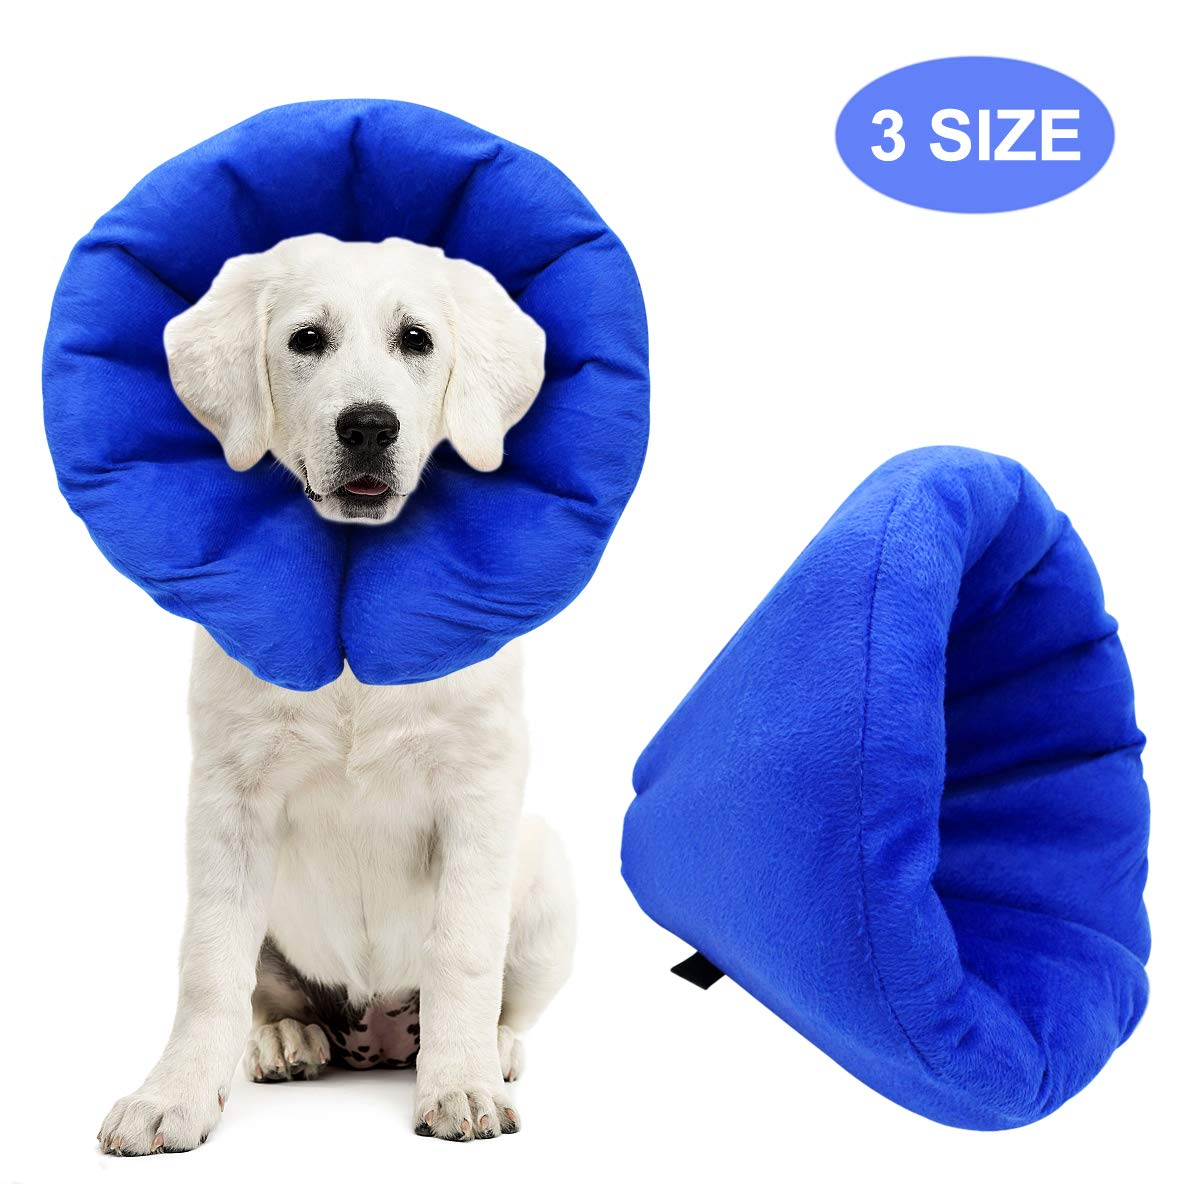 AK KYC Pet Inflatable Collar for Dogs Cone After Surgery Adjustable Puppy Recovery Protective Collar for Small Medium Dogs, 8.6-11 inch M by AK KYC